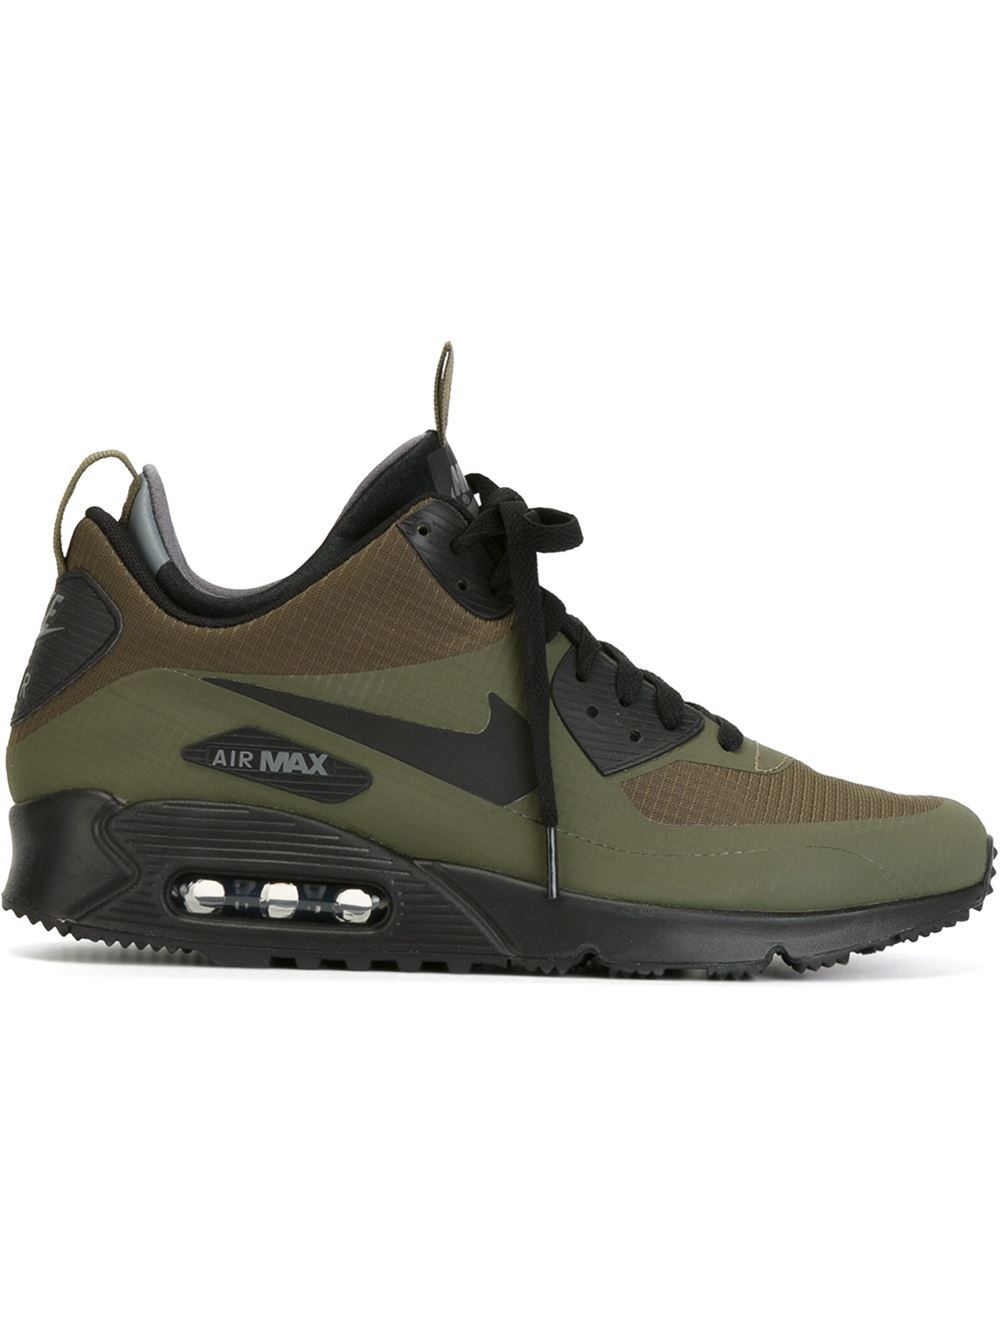 nike air max 90 mid winter sneaker boots in green for men lyst. Black Bedroom Furniture Sets. Home Design Ideas